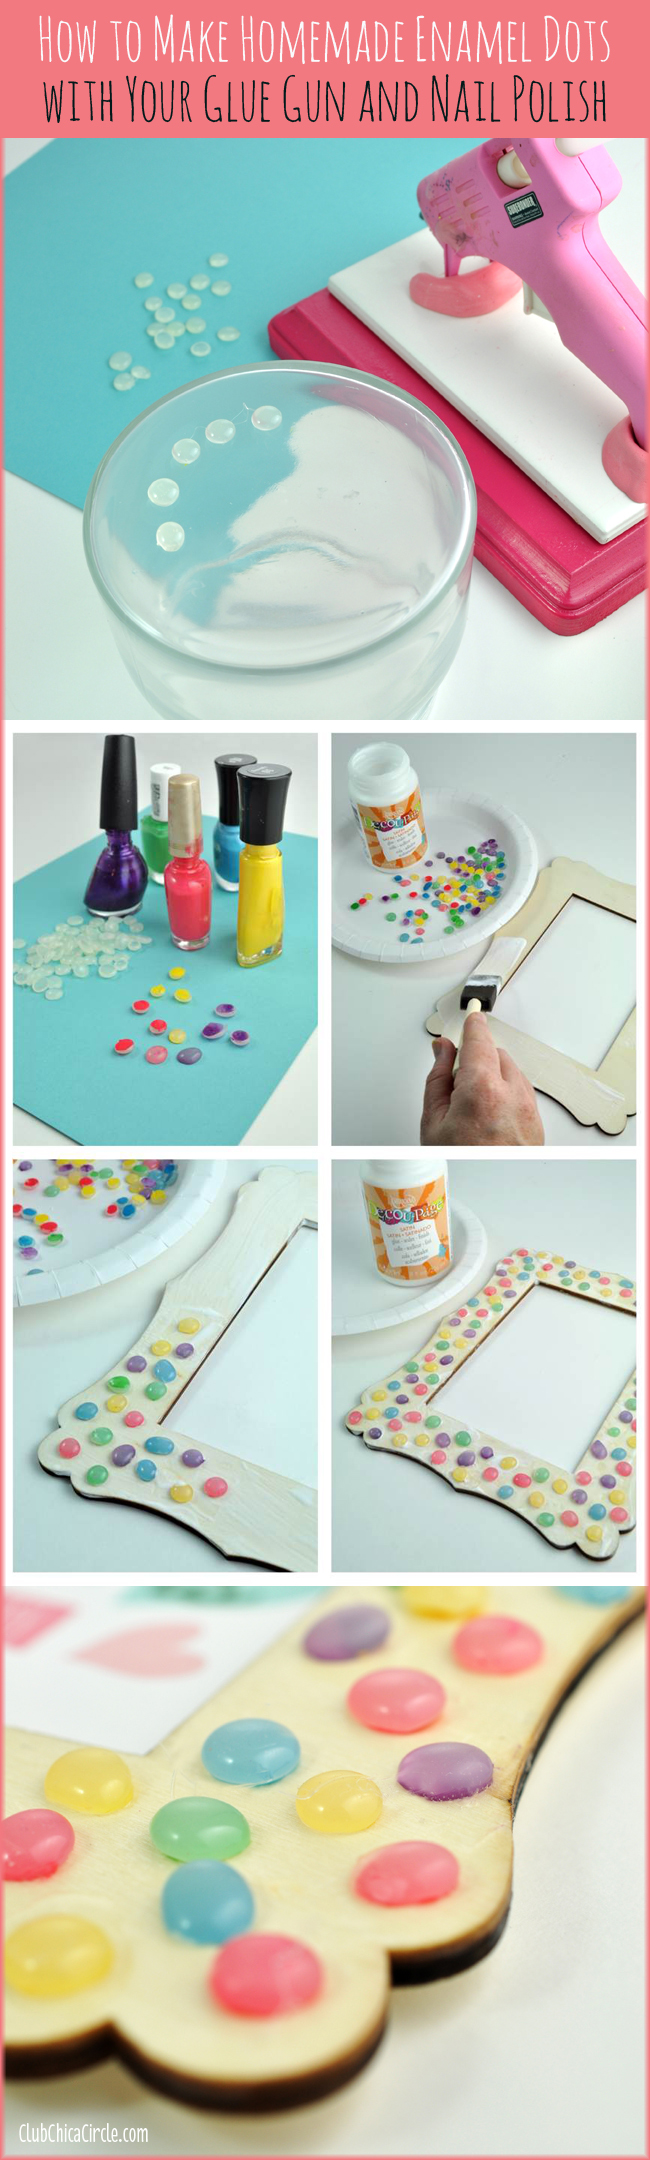 Magnailtic Nail Art Display Board